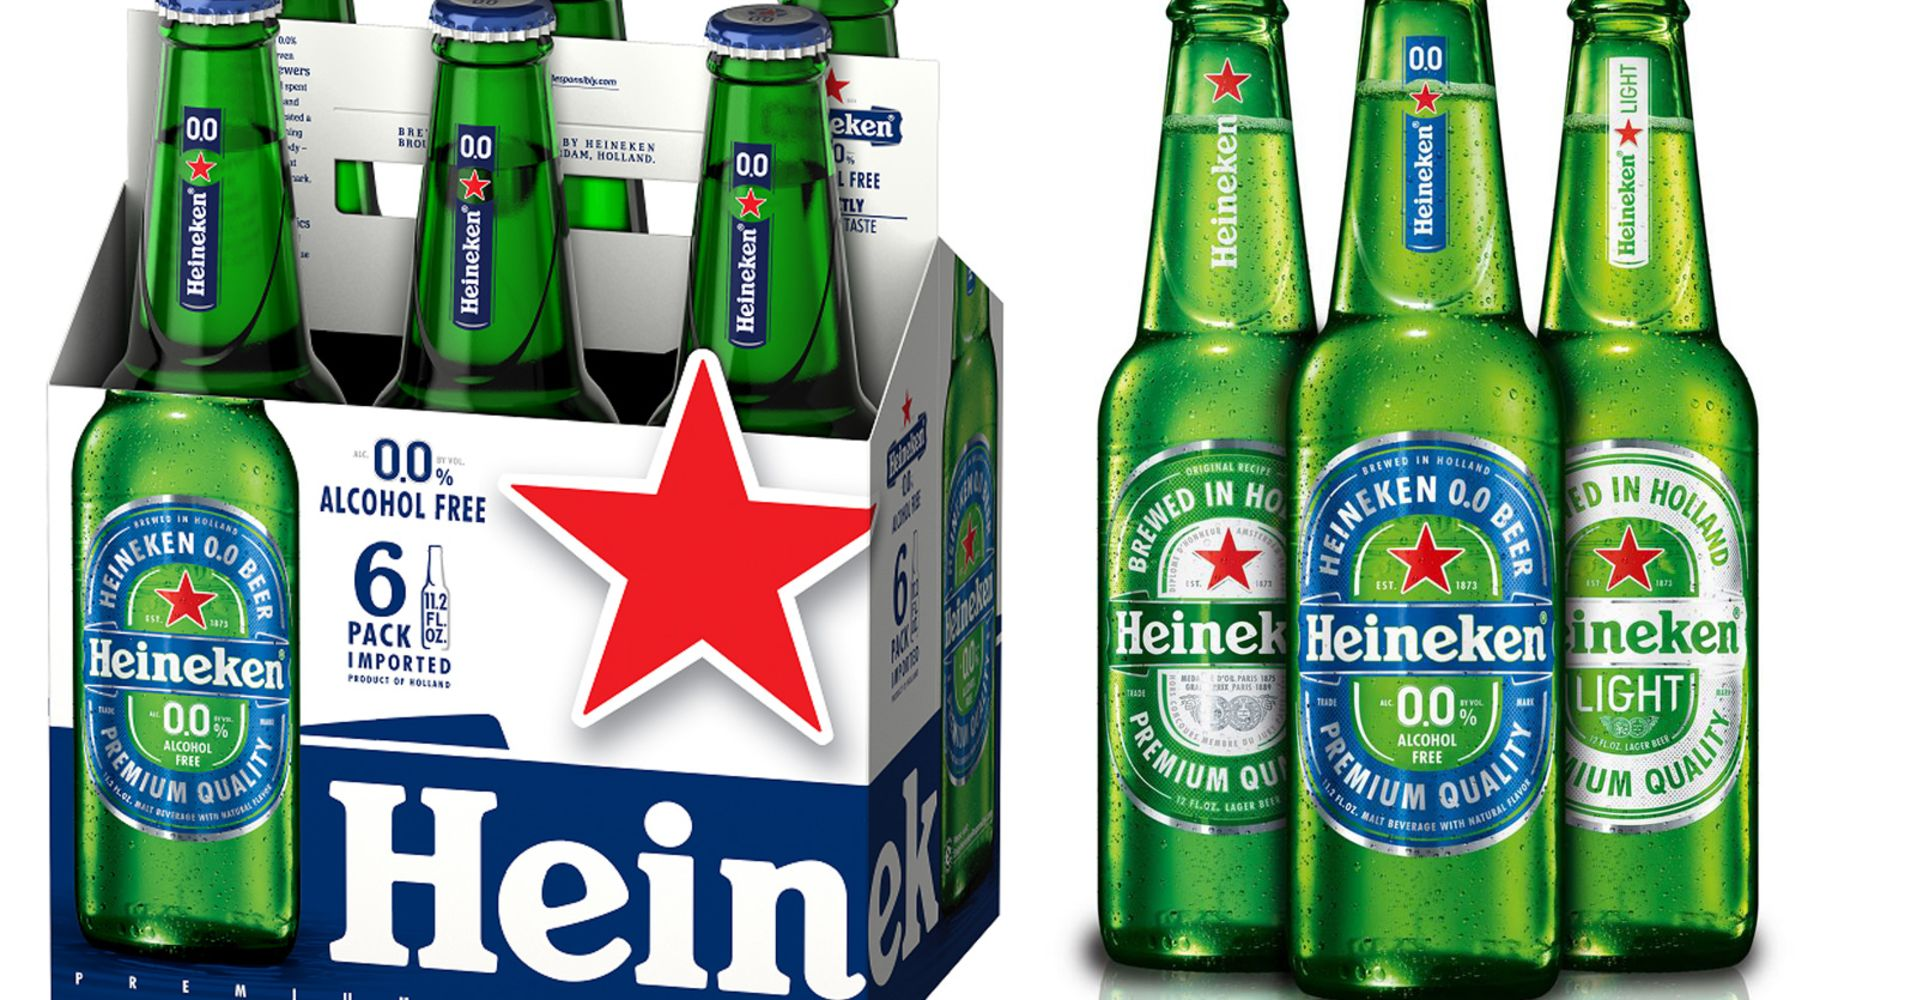 Heineken To Introduce Nonalcoholic Beer Nationwide As Health-conscious Consumers Ditch Beer photo